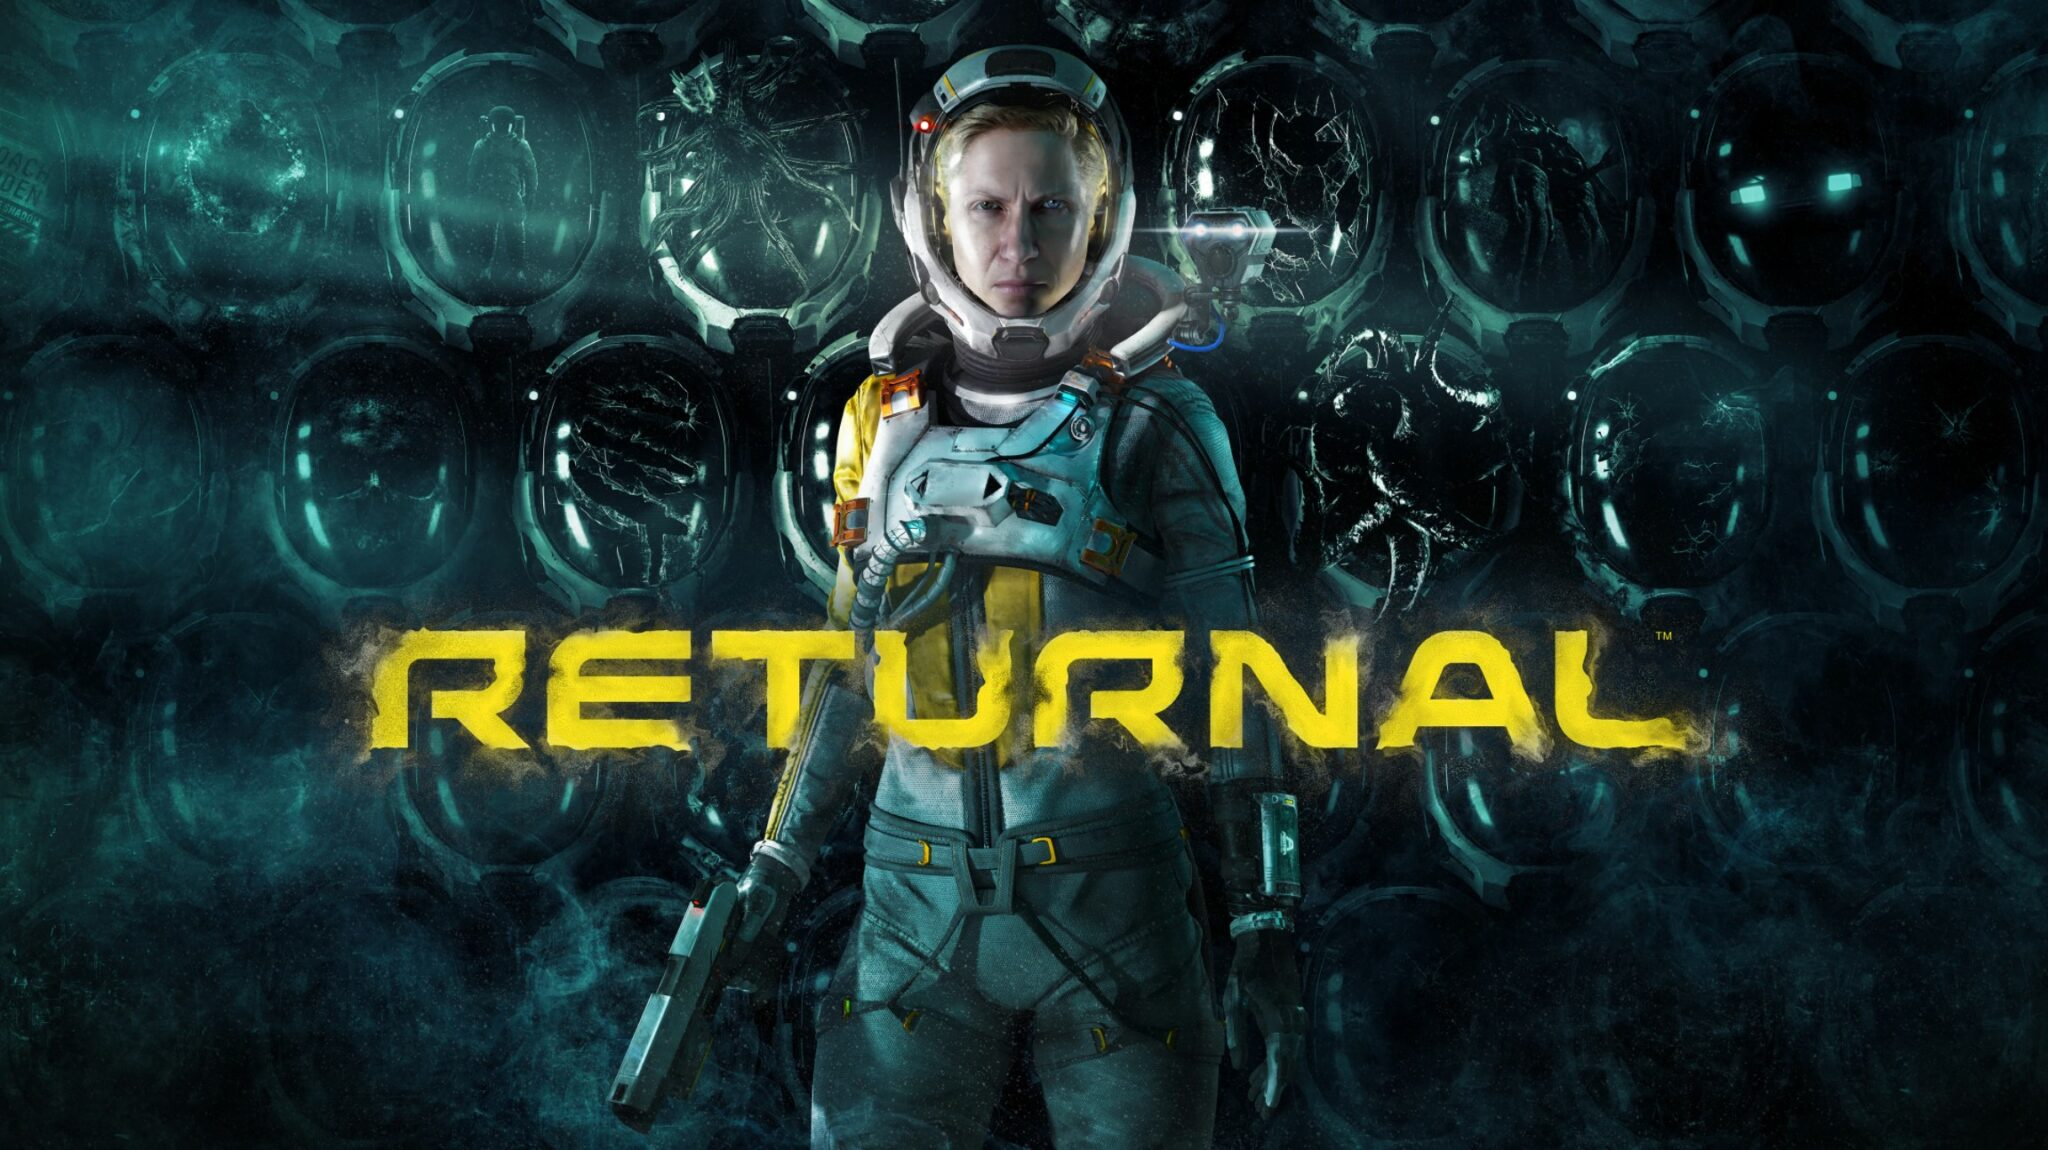 Returnal – How to Break Glowing Red Vines to Get Health Items